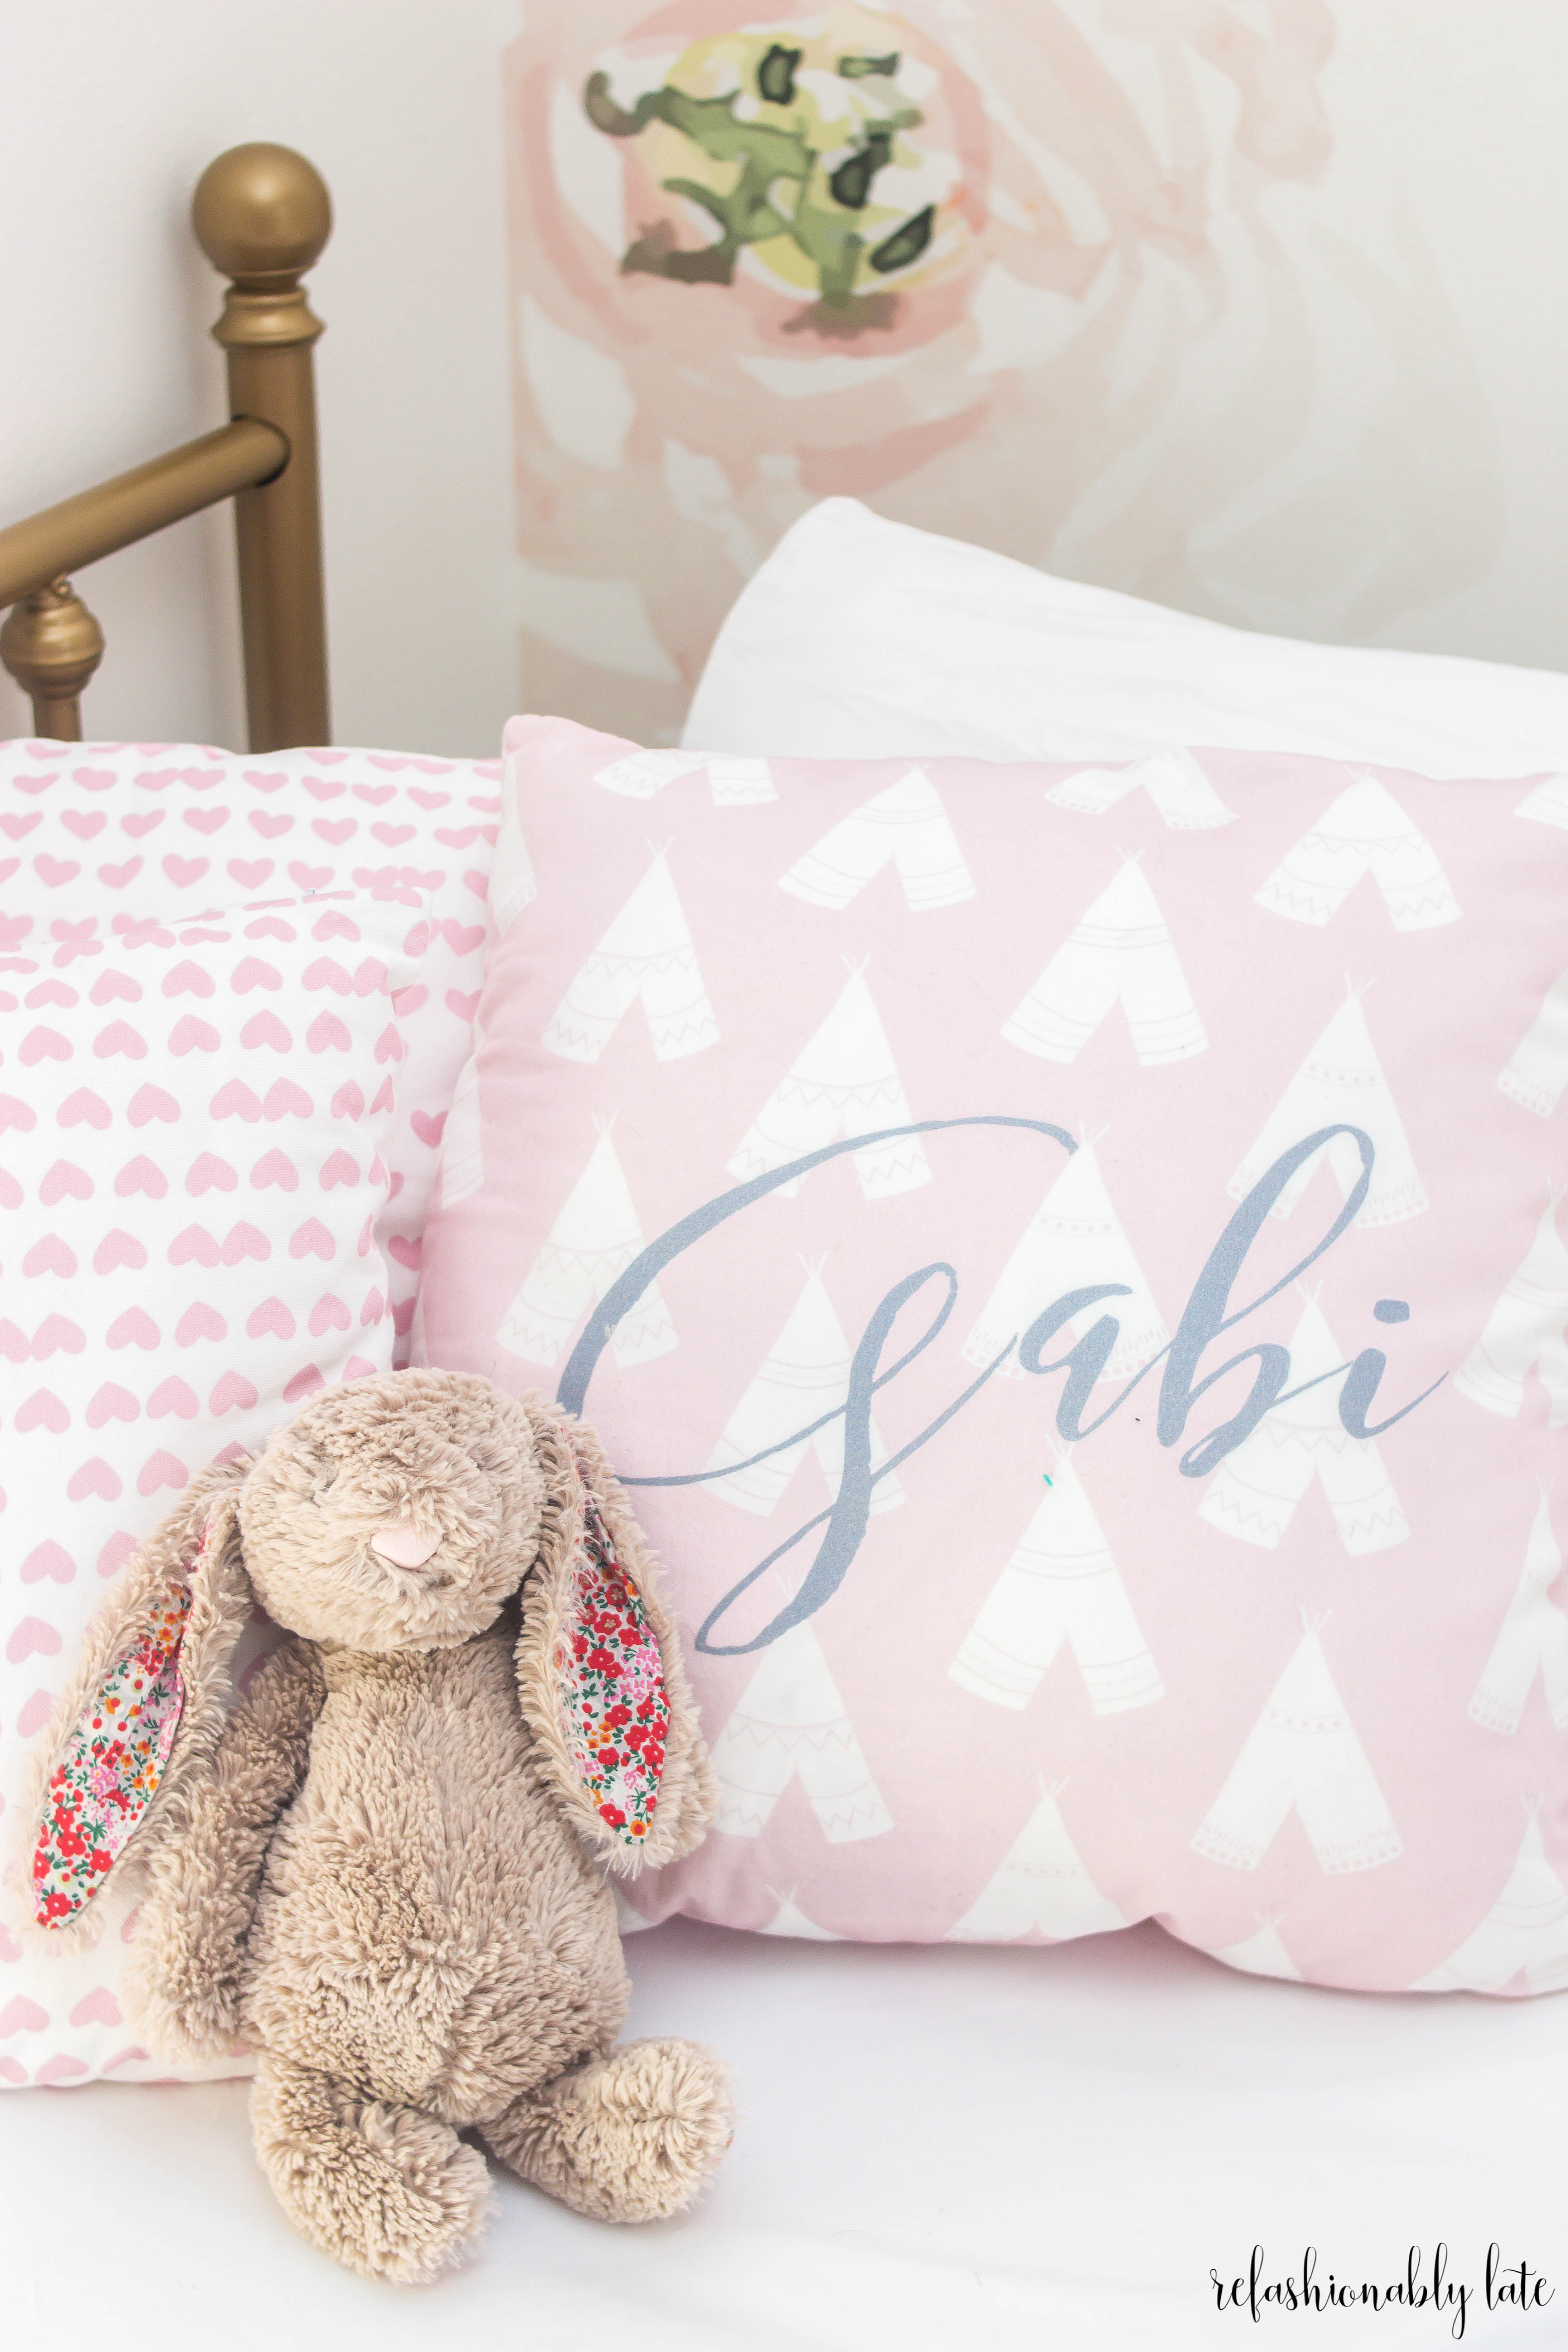 pink pillows with Gabi written on one a stuffed bunny and gold bed